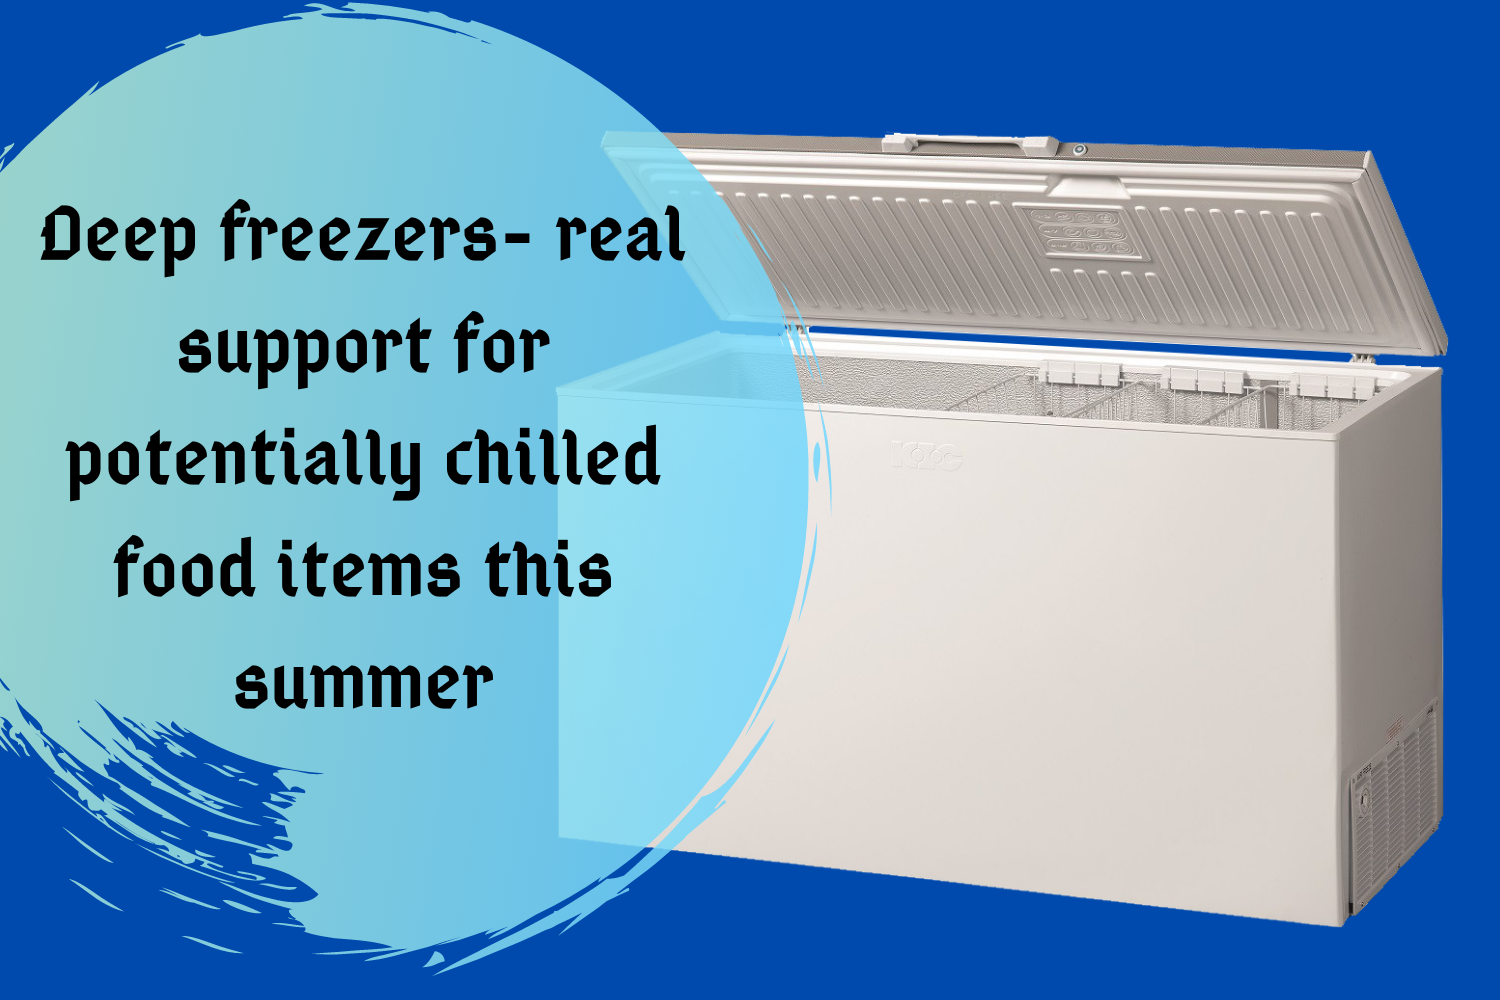 Haier and Waves Deep Freezer